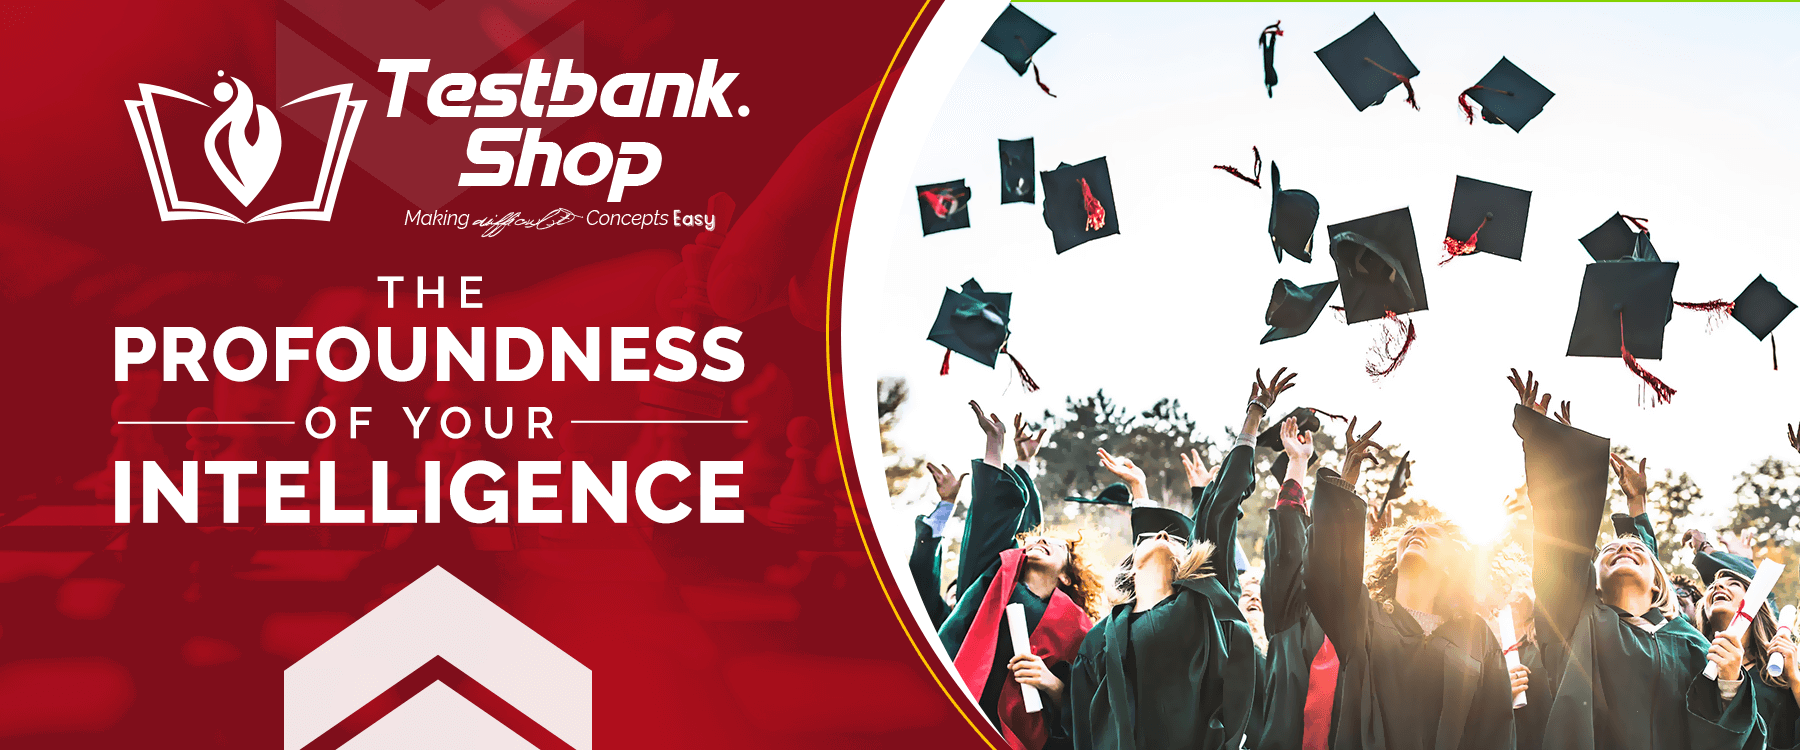 Testbank.Shop | All the Test Bank and Textbook Solutions You Need